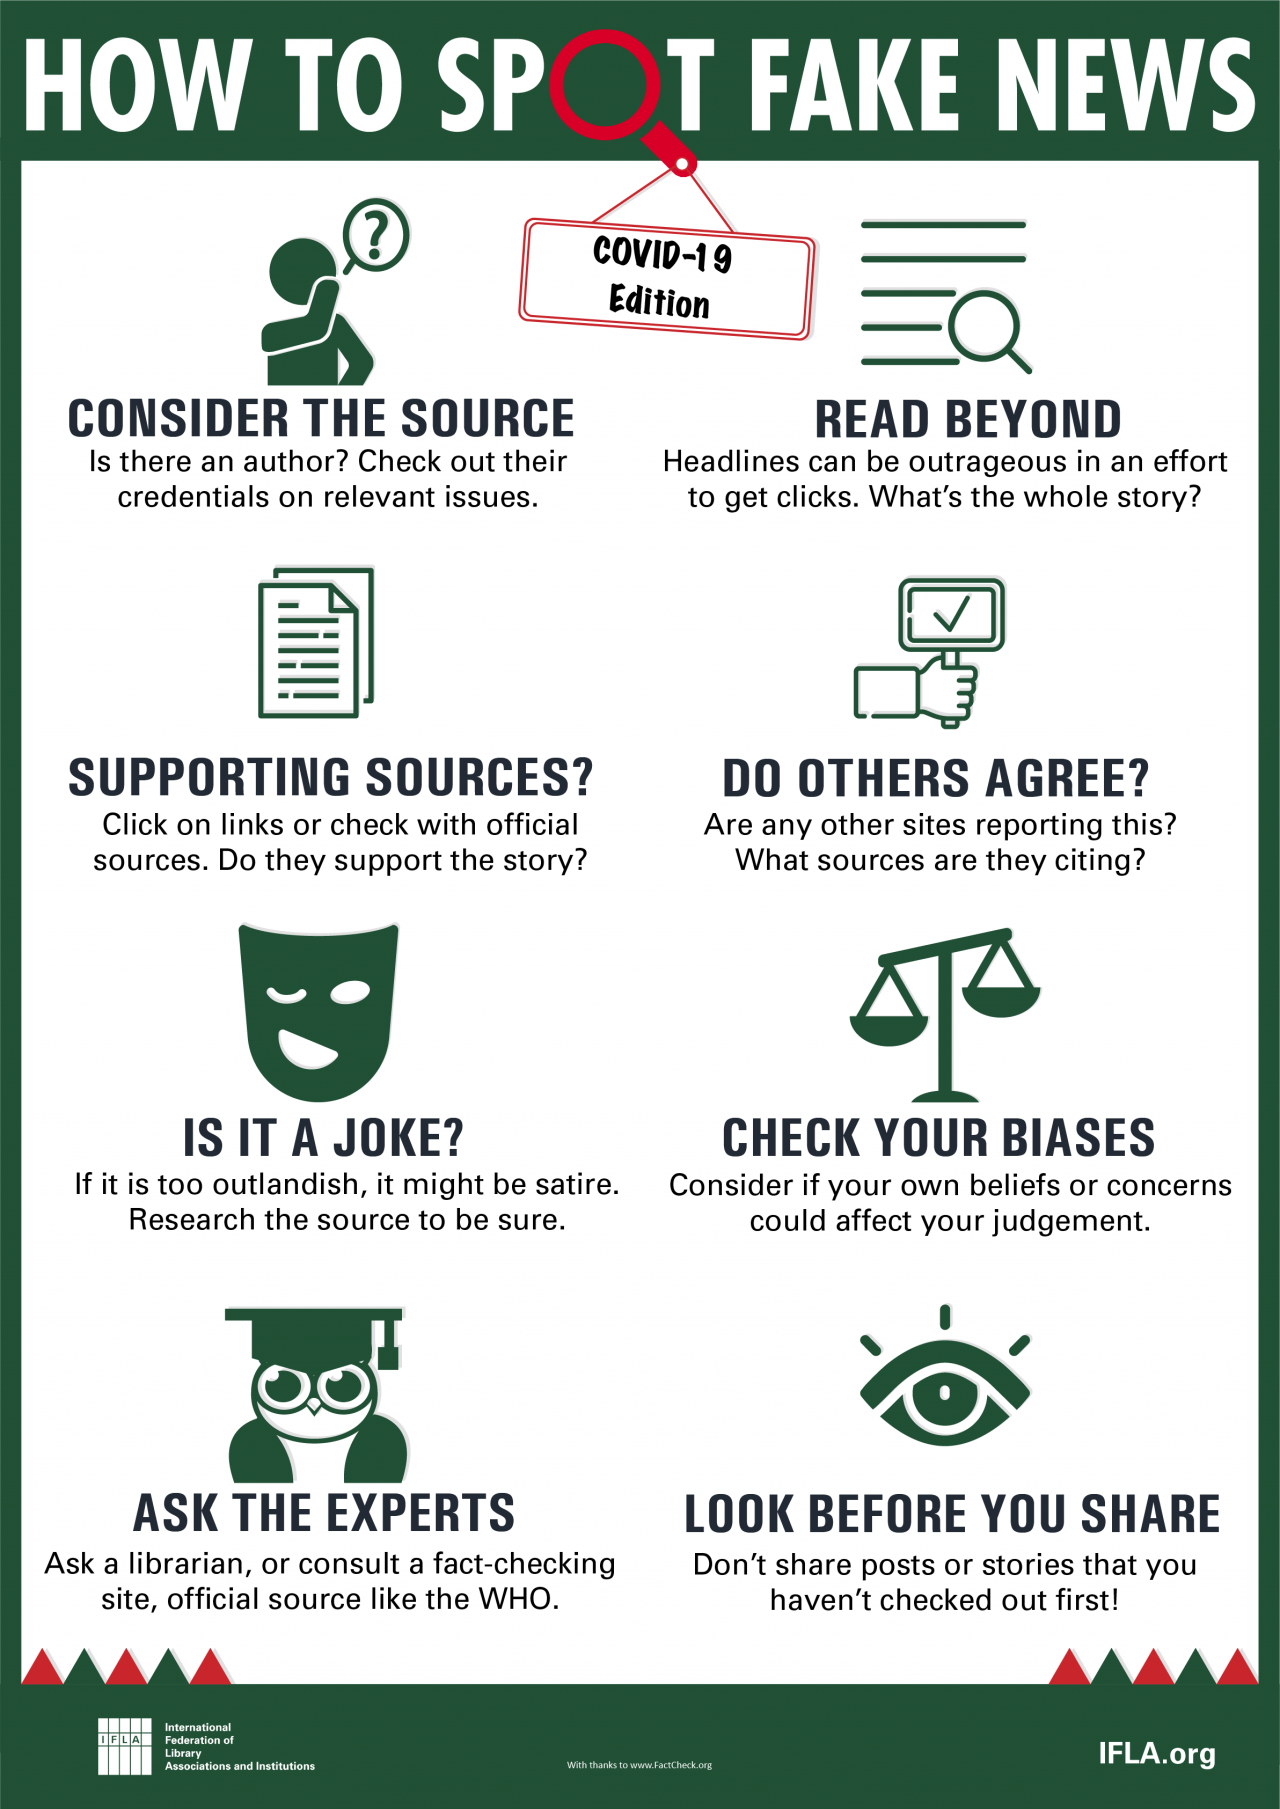 How to Spot Fake News - COVID-19 Edition